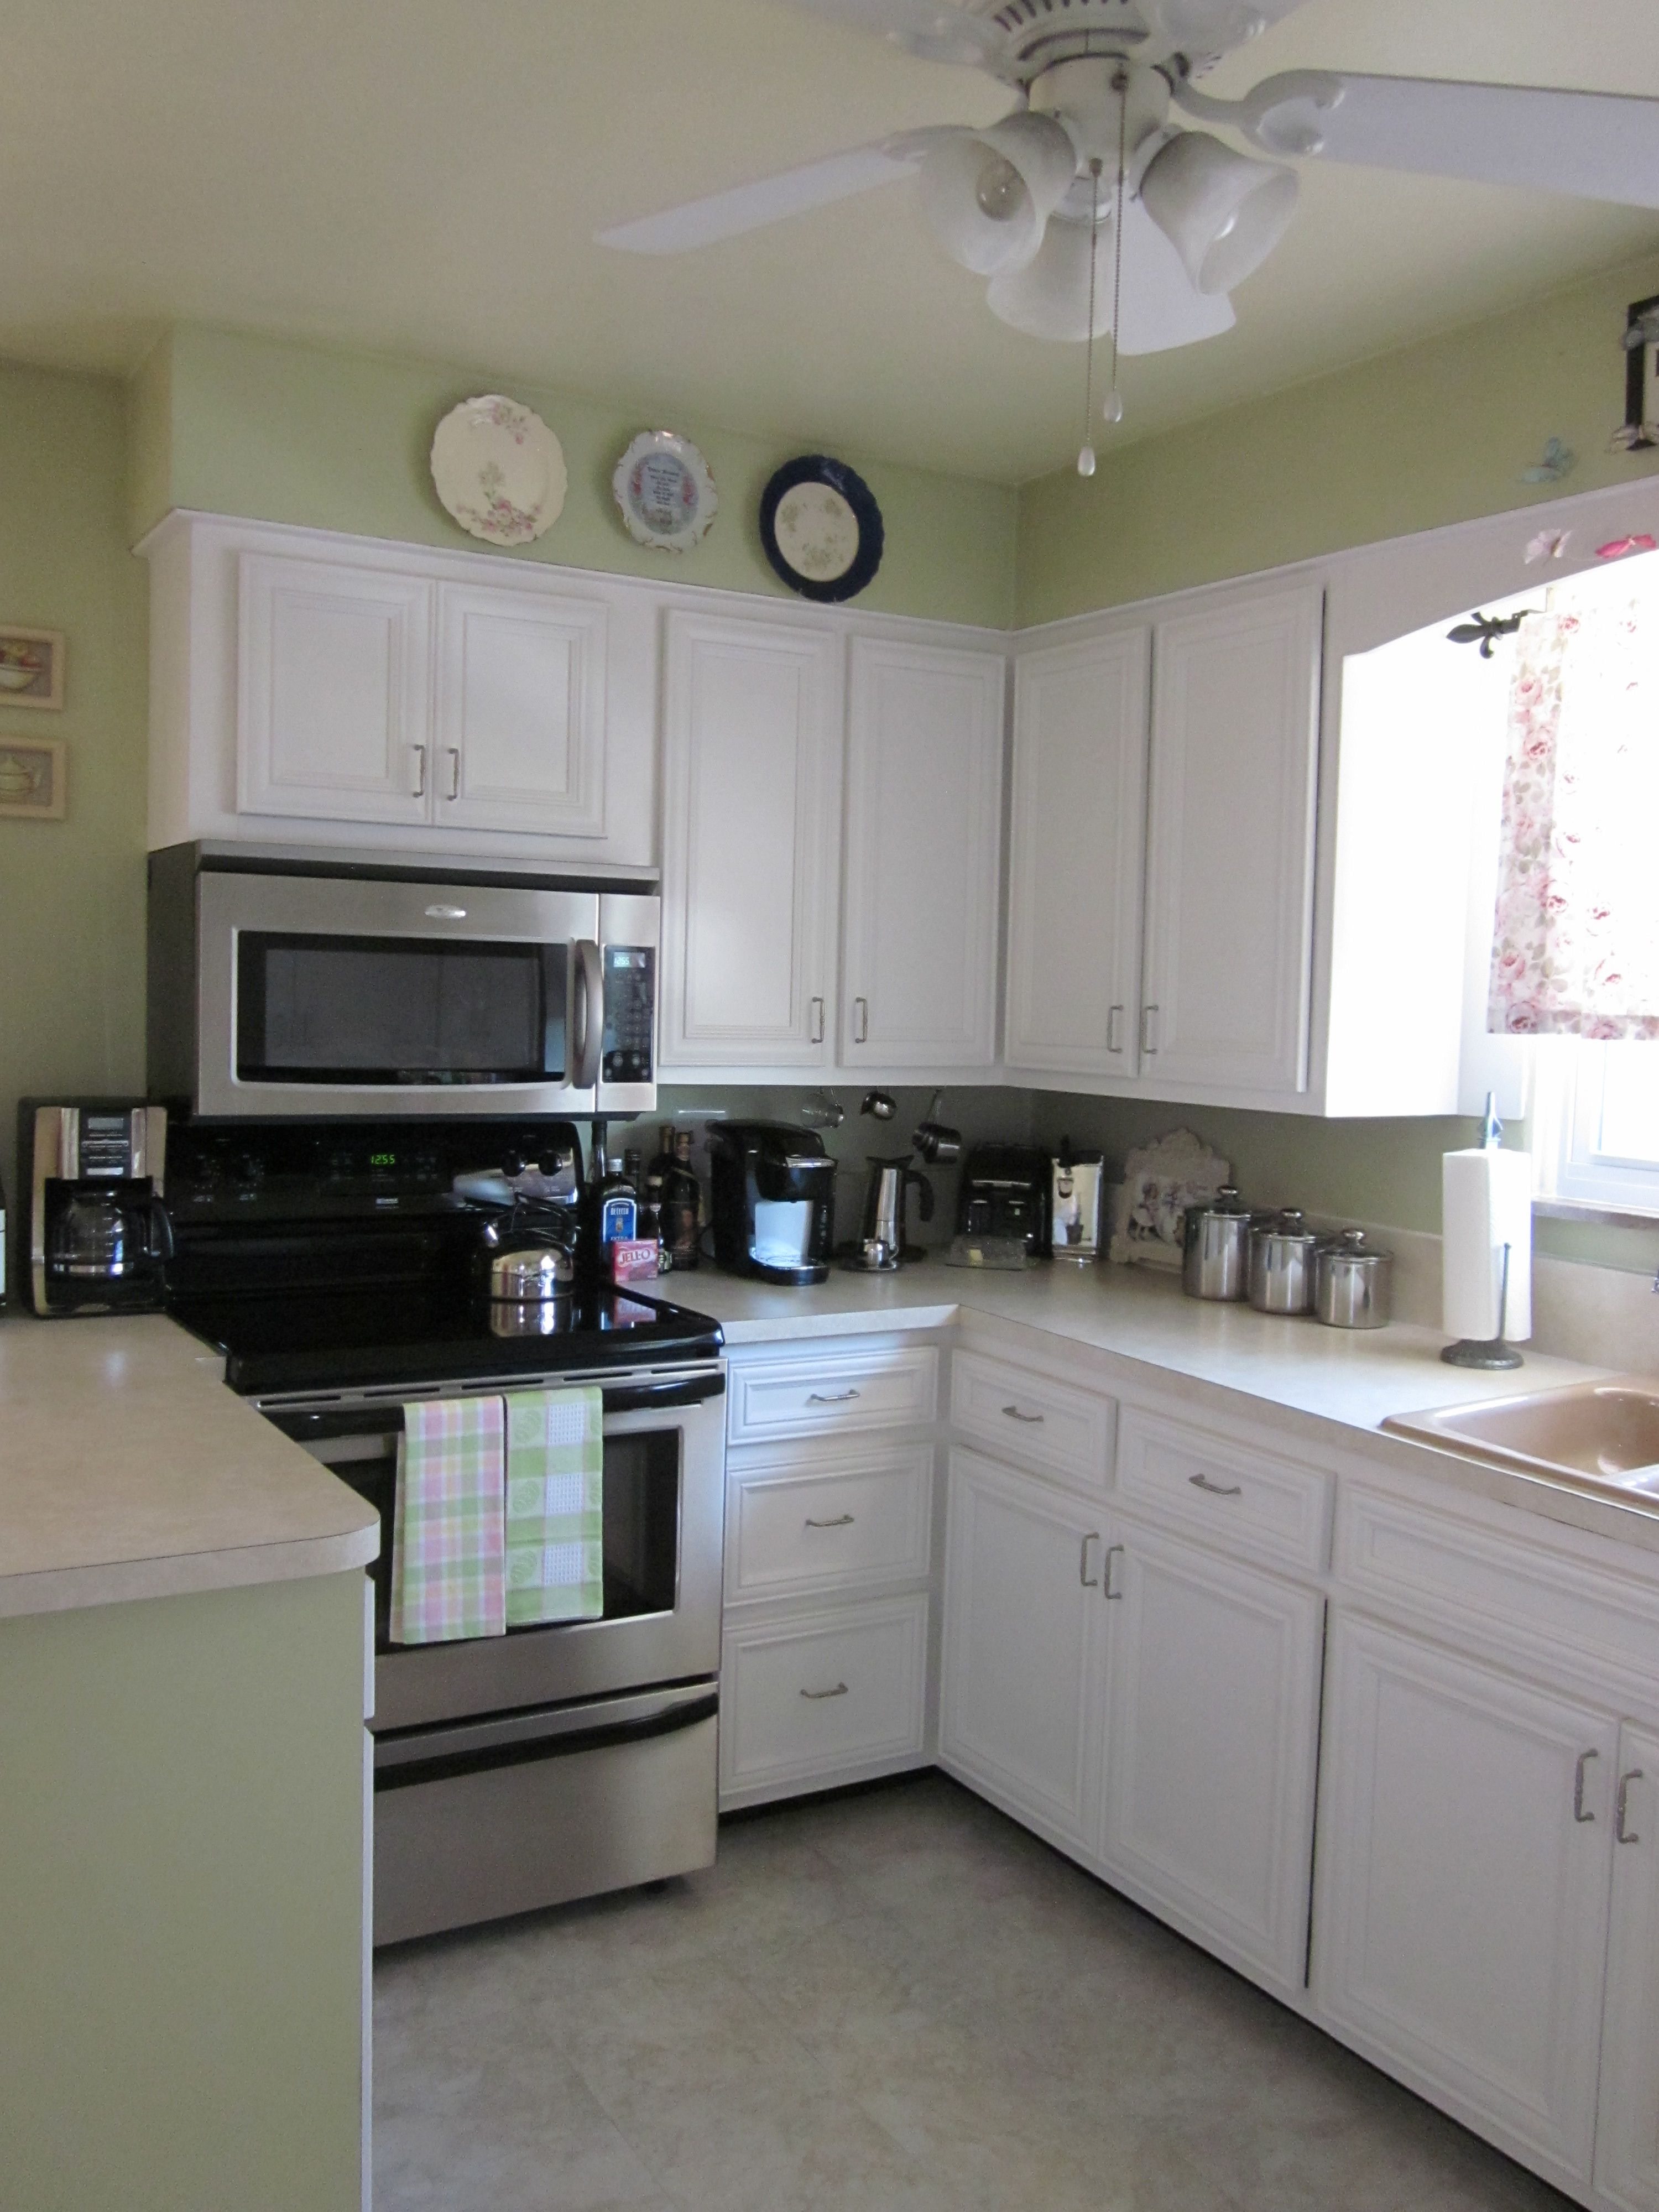 Refaced kitchen cabinets love the trim on them | Pantry ...